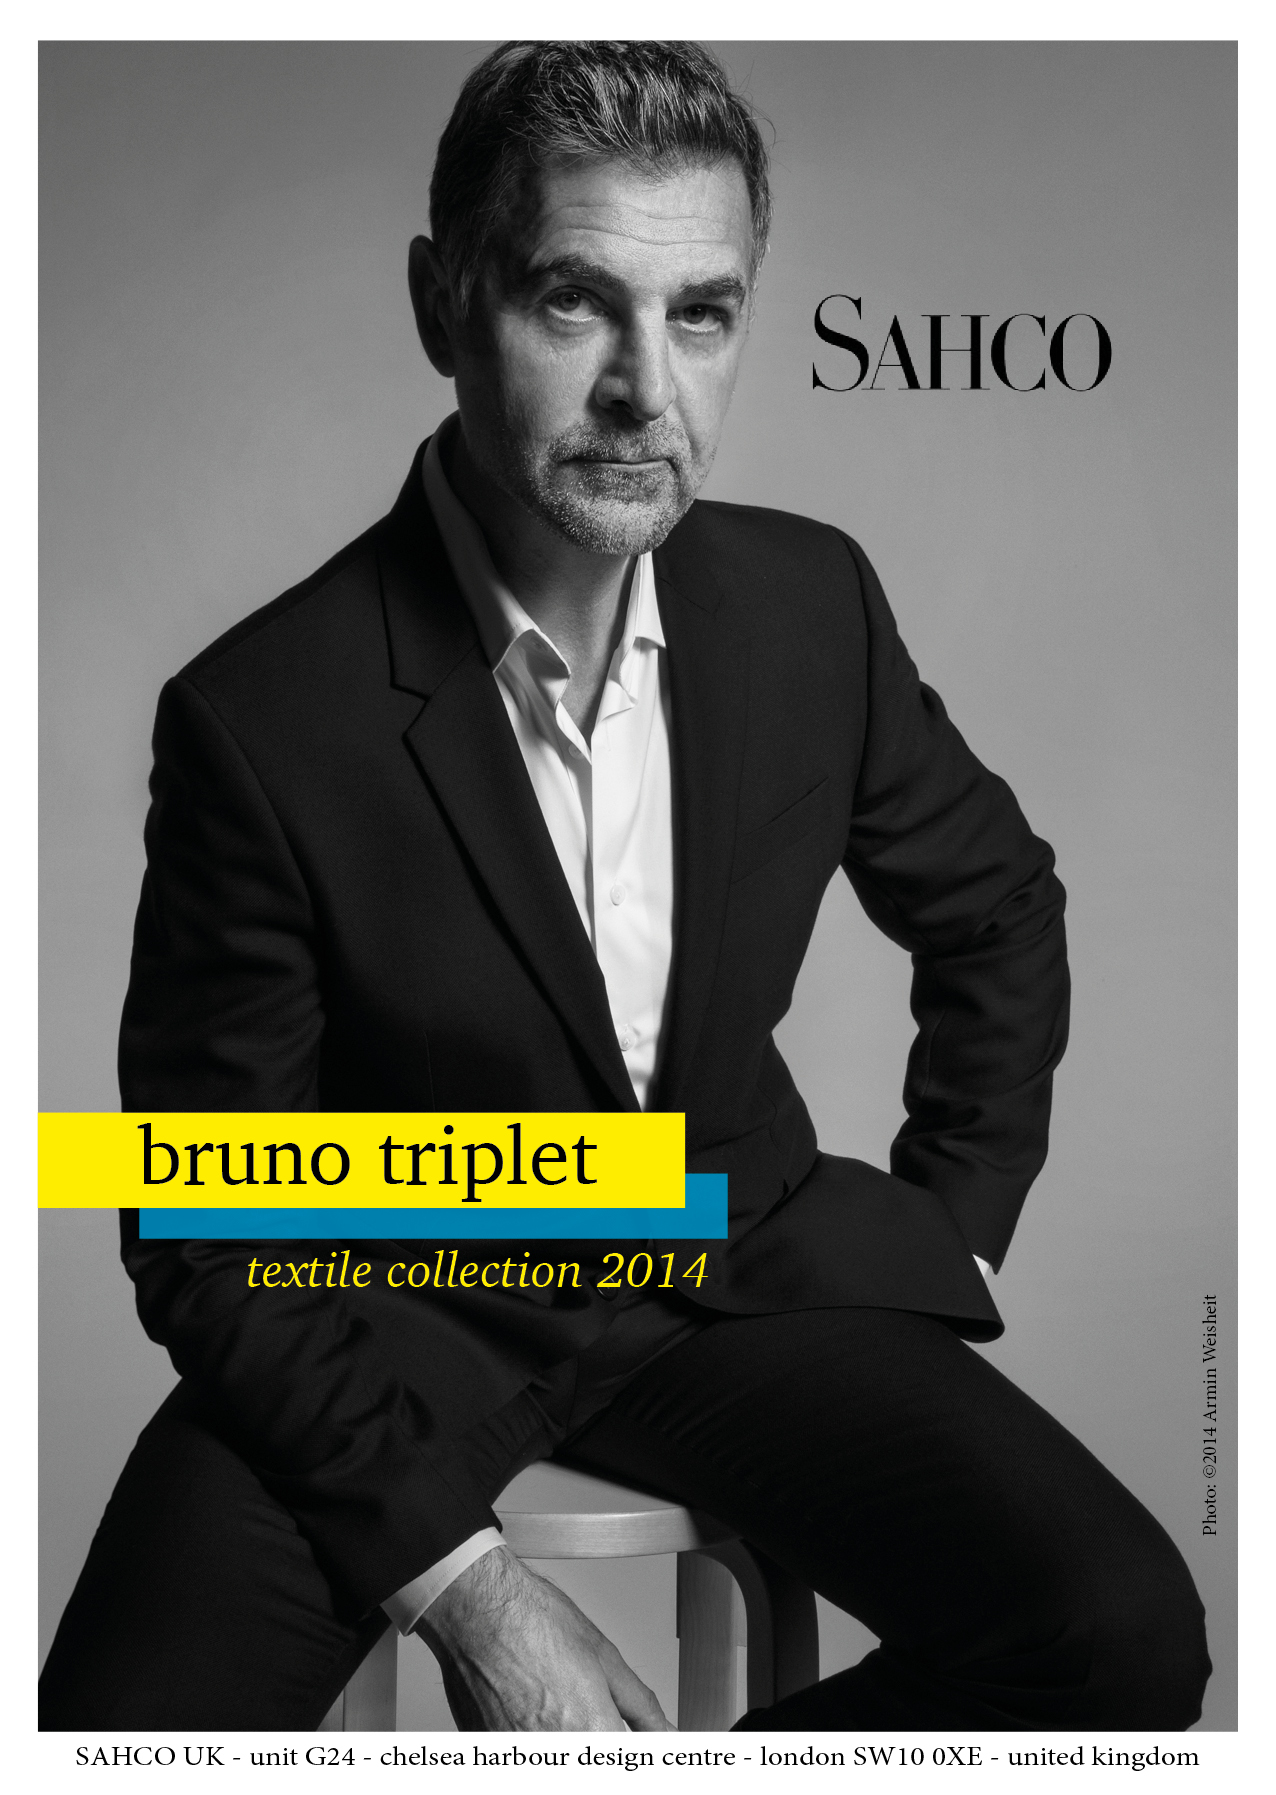 Today I had a great photo shoot with Bruno Triplet. The photographs are used to promote his new  texture and fabric collection.